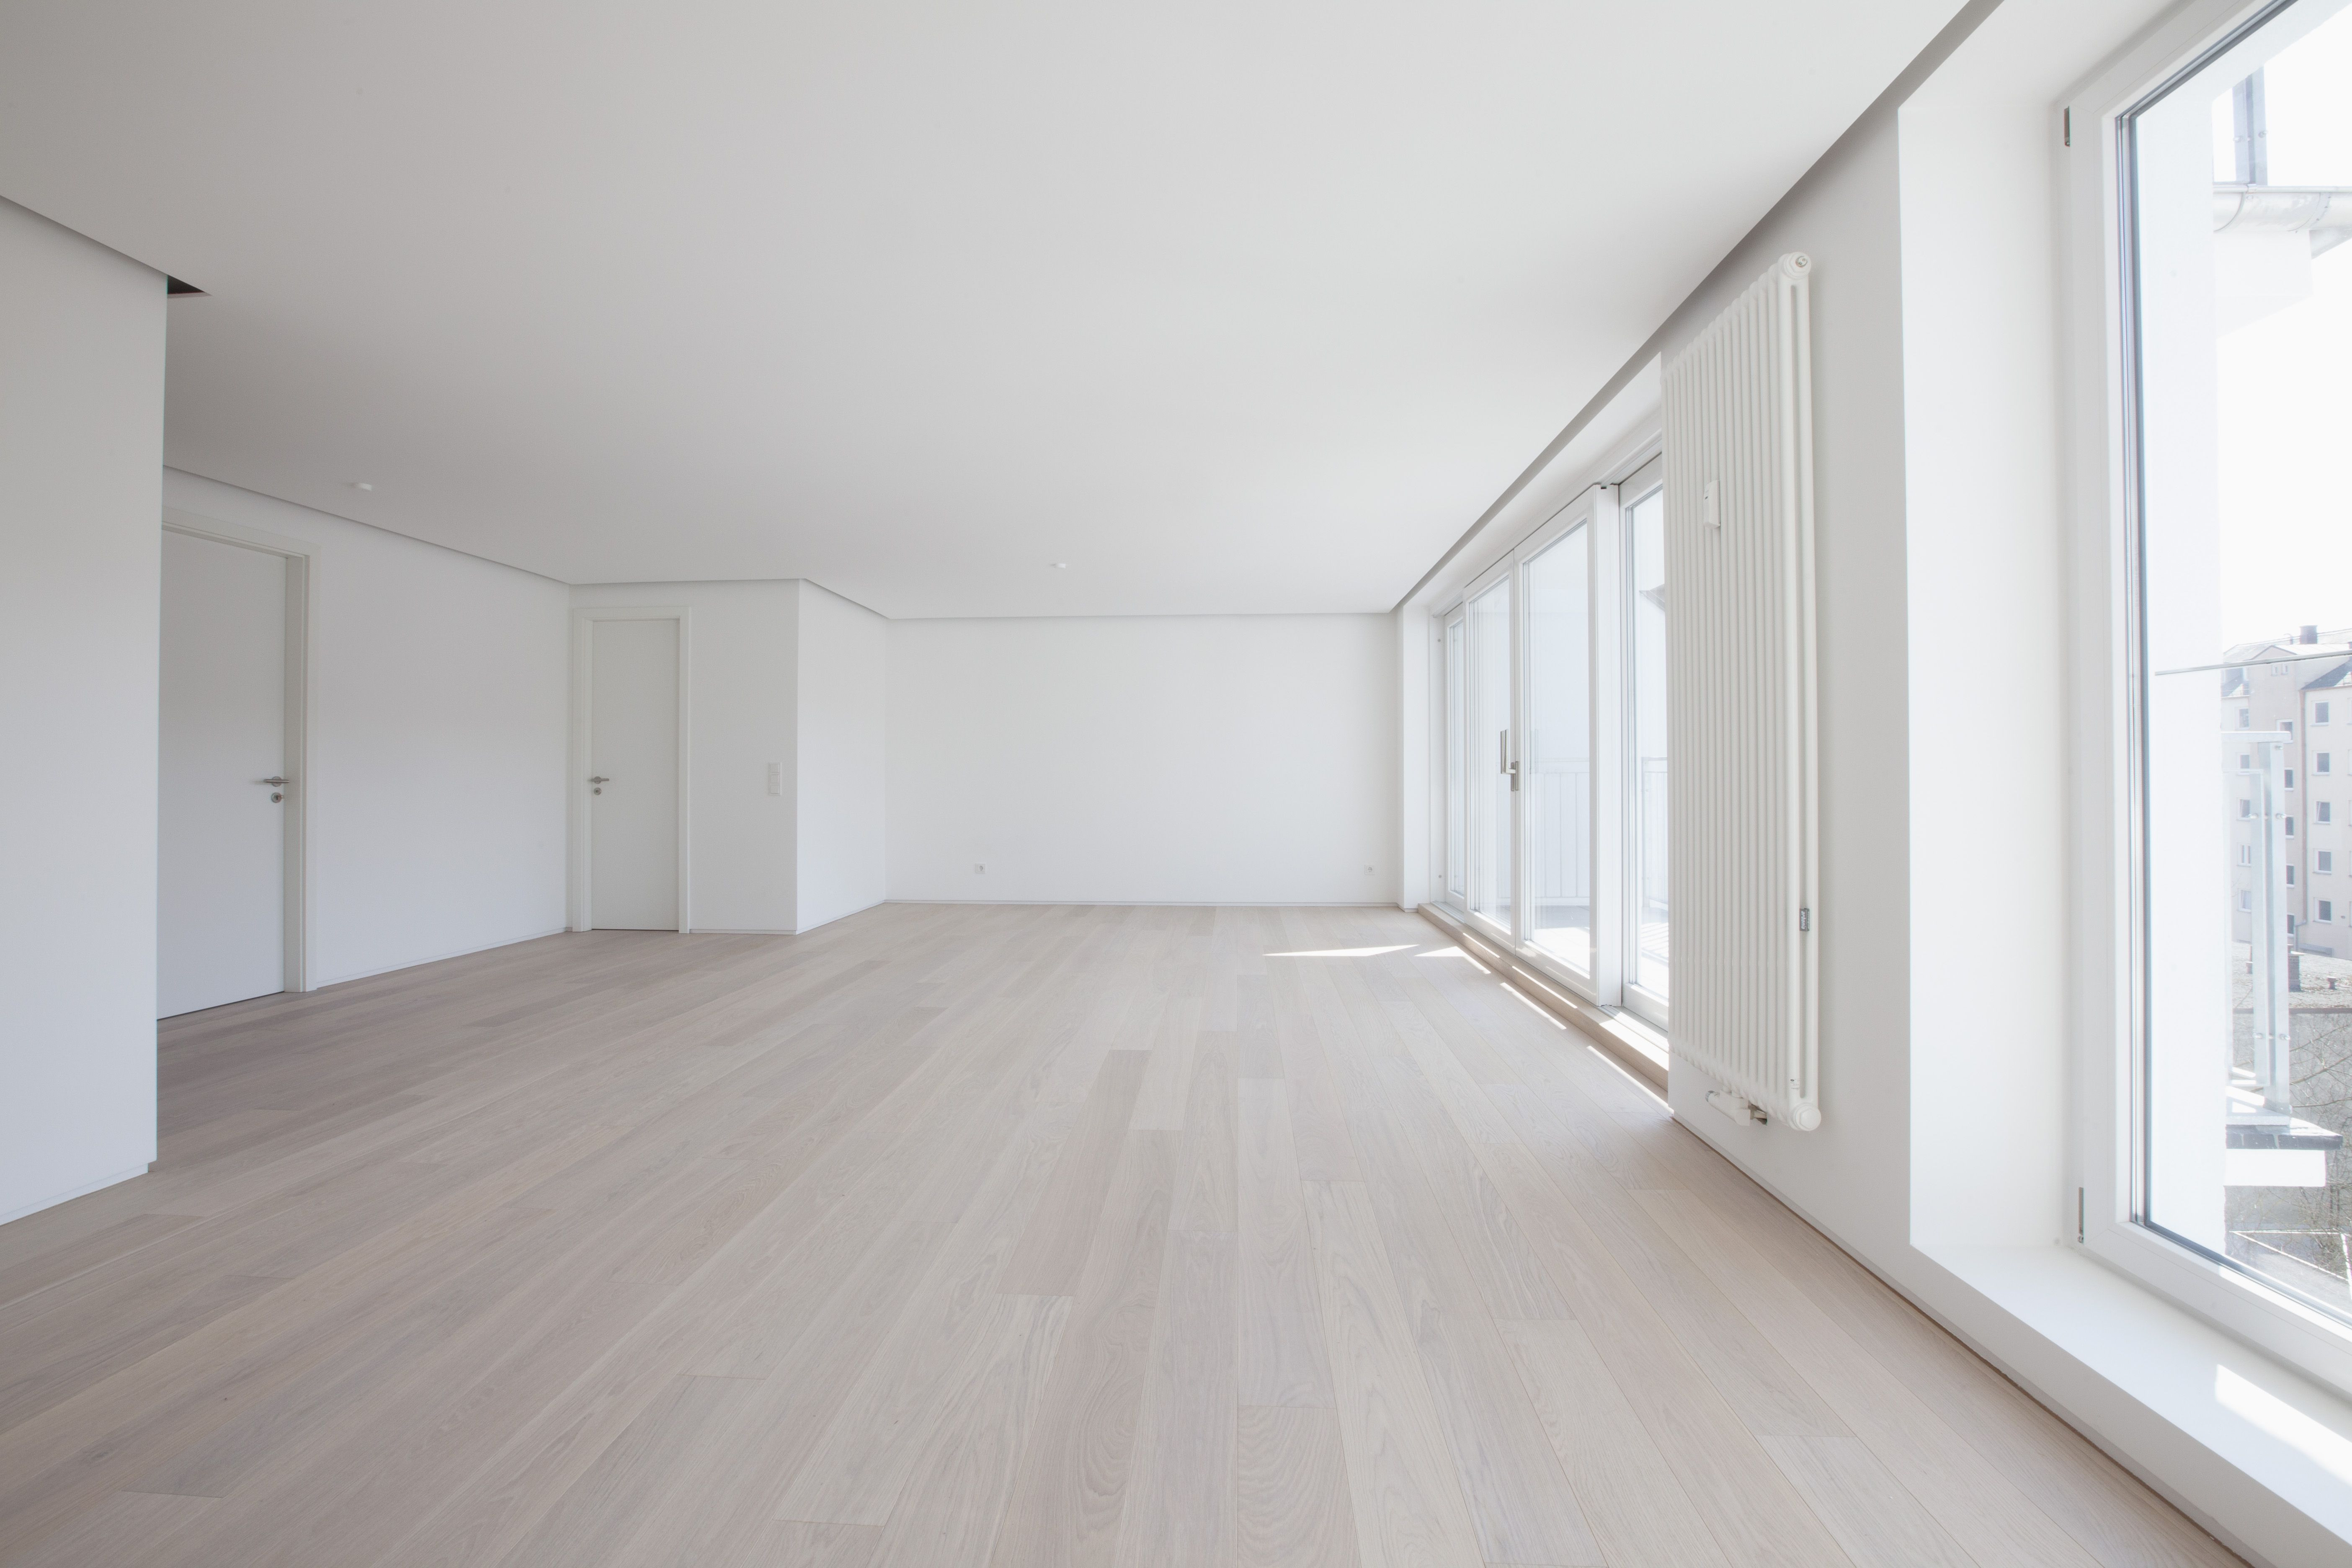 hardwood floor refinishing spokane of basics of favorite hybrid engineered wood floors for empty living room in modern apartment 578189139 58866f903df78c2ccdecab05